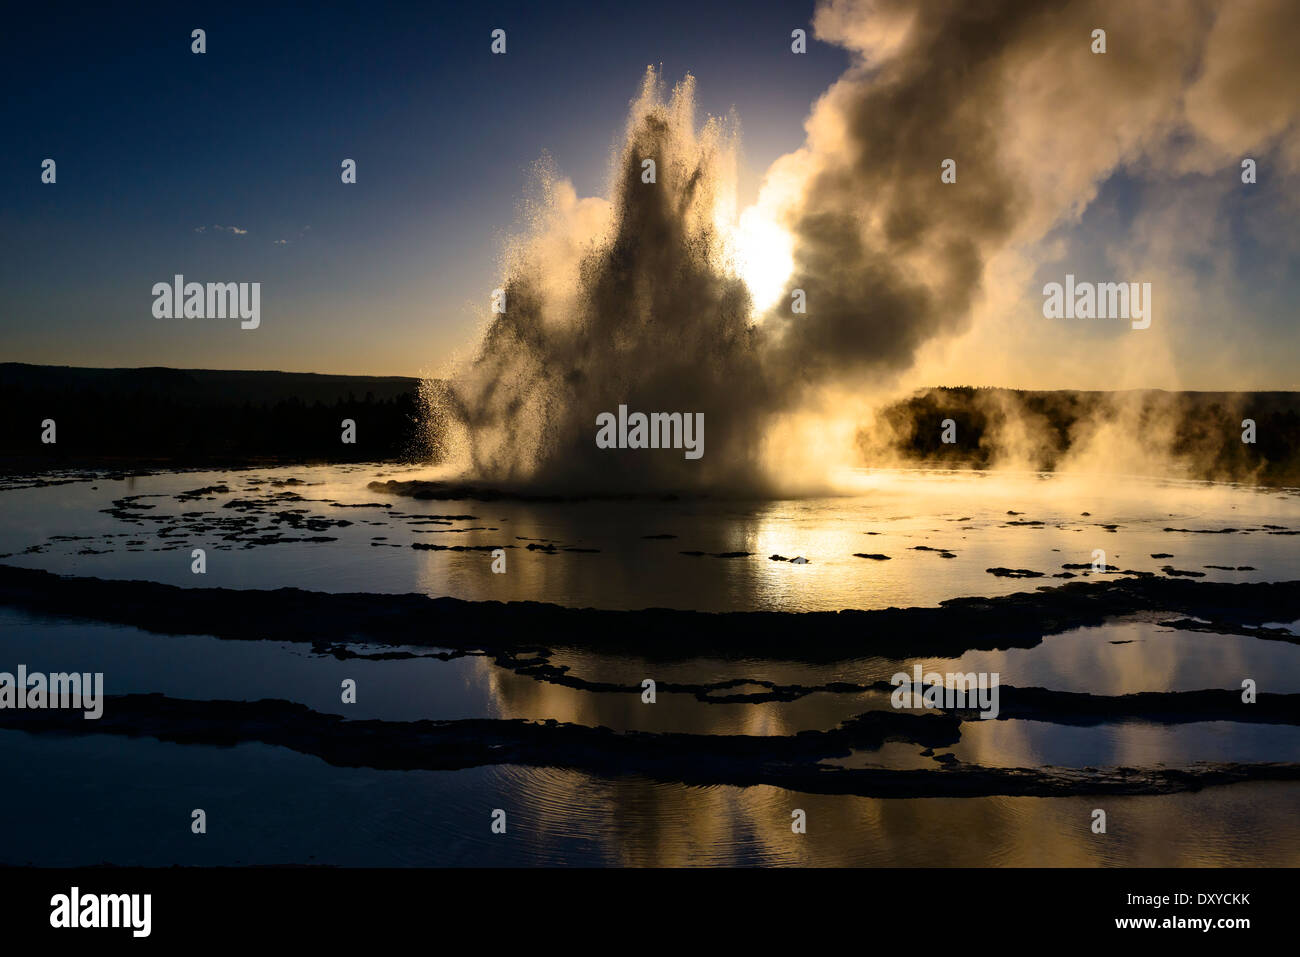 Great Fountain Geyser erupting at sunset. Stock Photo